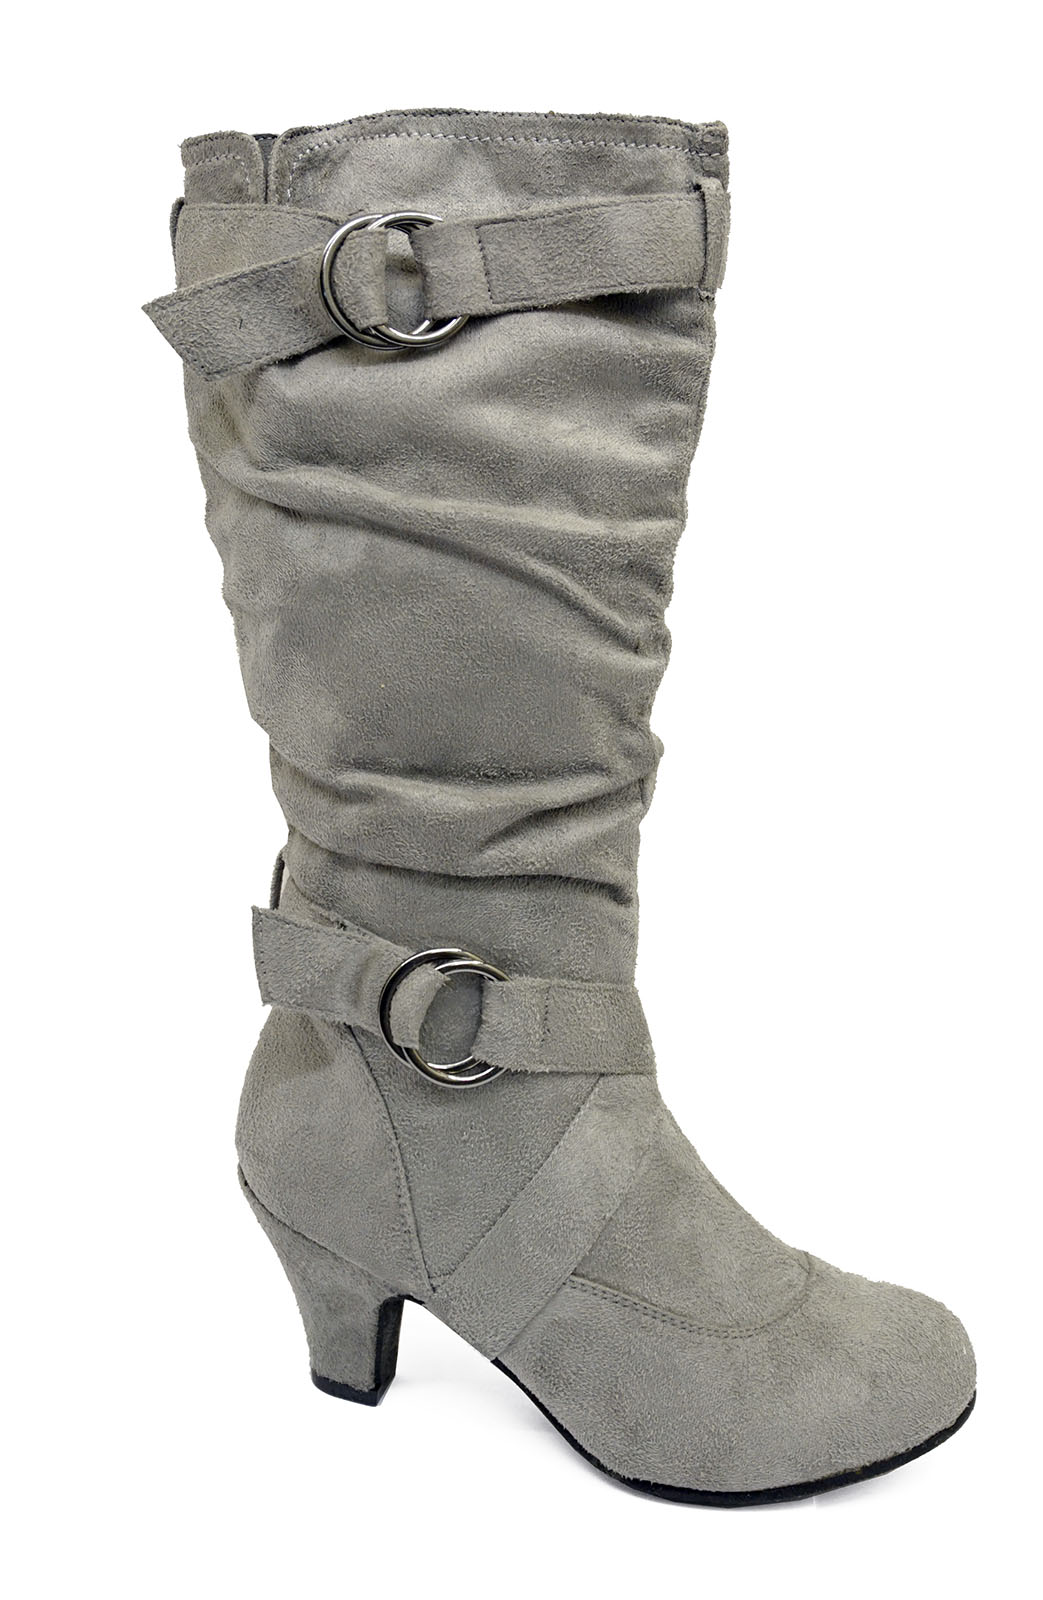 LADIES-GREY-ZIP-UP-BIKER-SLOUCH-RUCHED-TALL-KNEE-CALF-LOW-HEEL-BOOTS-SHOES-4-10 thumbnail 26